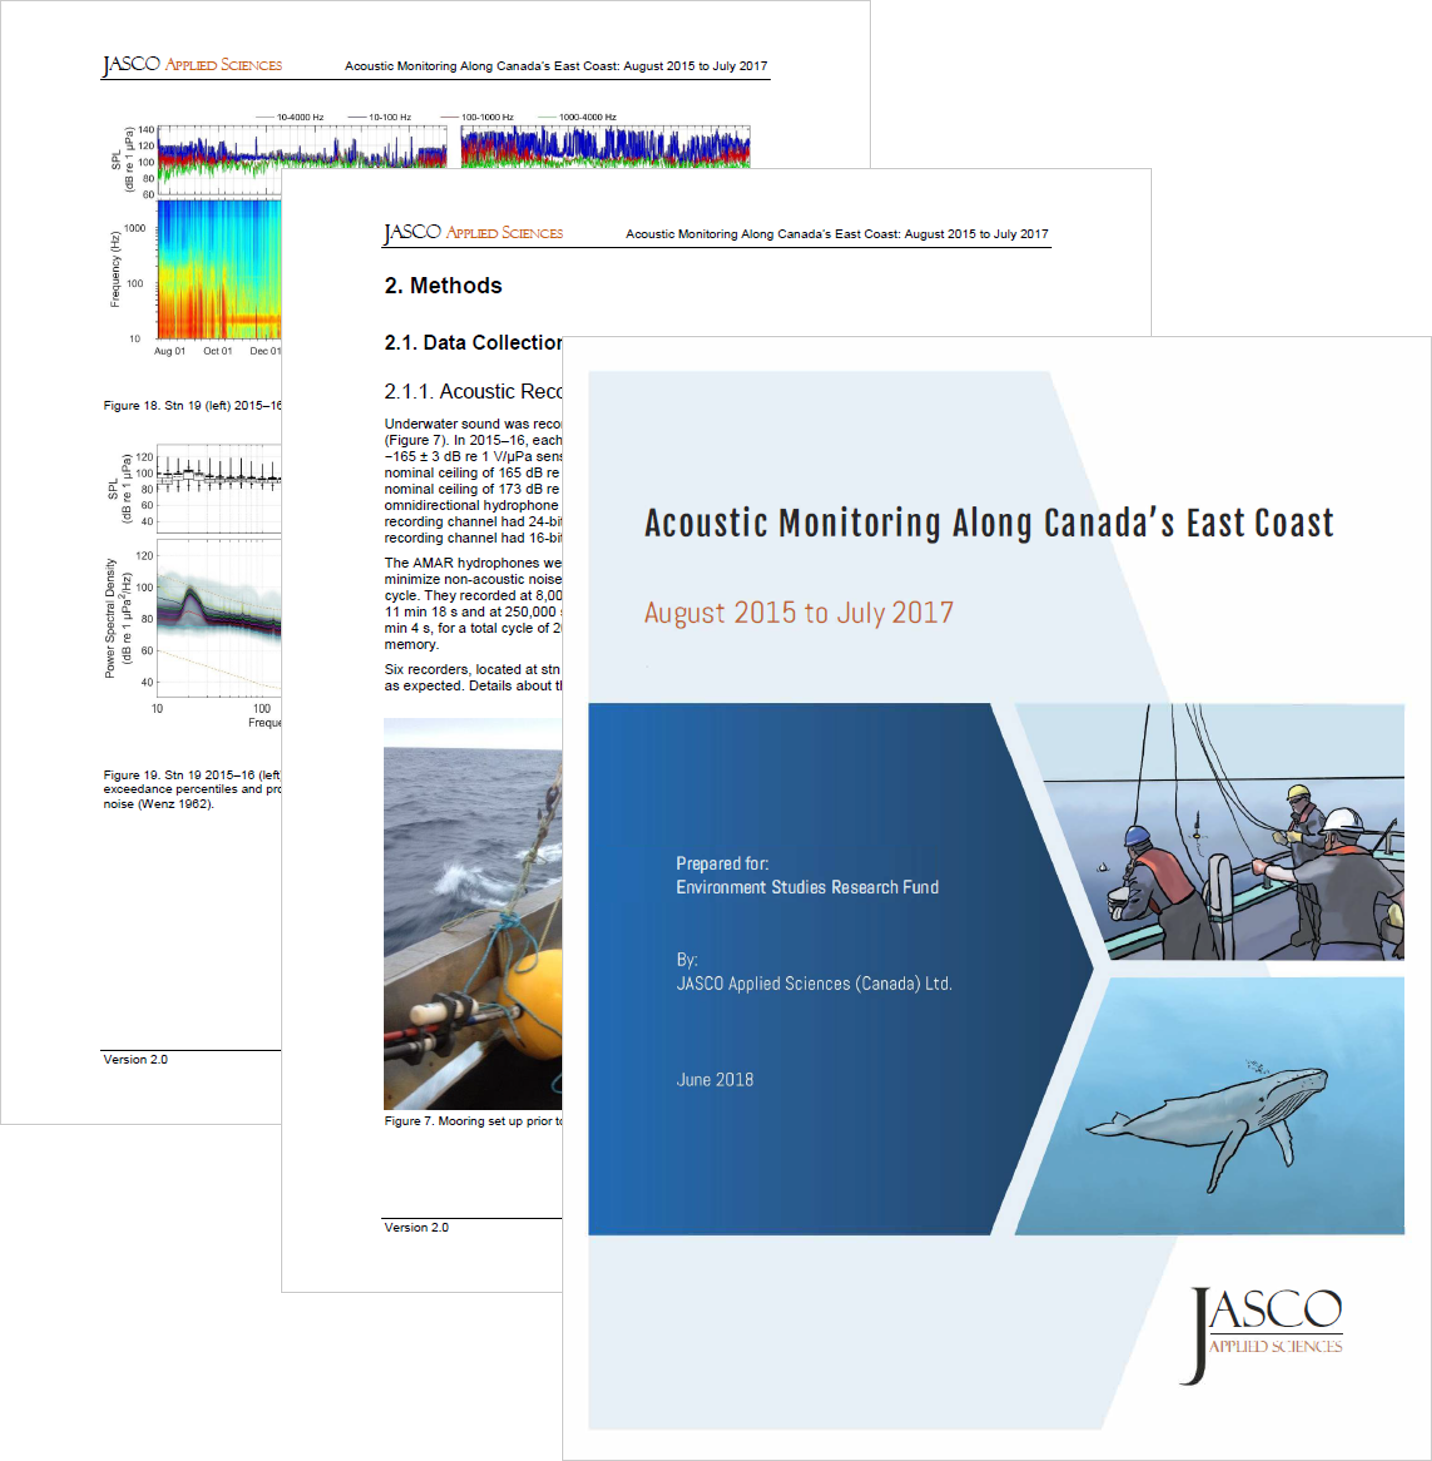 Acoustic Monitoring Along Canada's East Coast: August 2015 to July 2017 (PDF, 19 MB) - Julien Delarue, Katie Kowarski, Emily Maxner, Jeff MacDonnell, Bruce MartinEnvironmental Studies Research Fund Report Number 215 (2018)